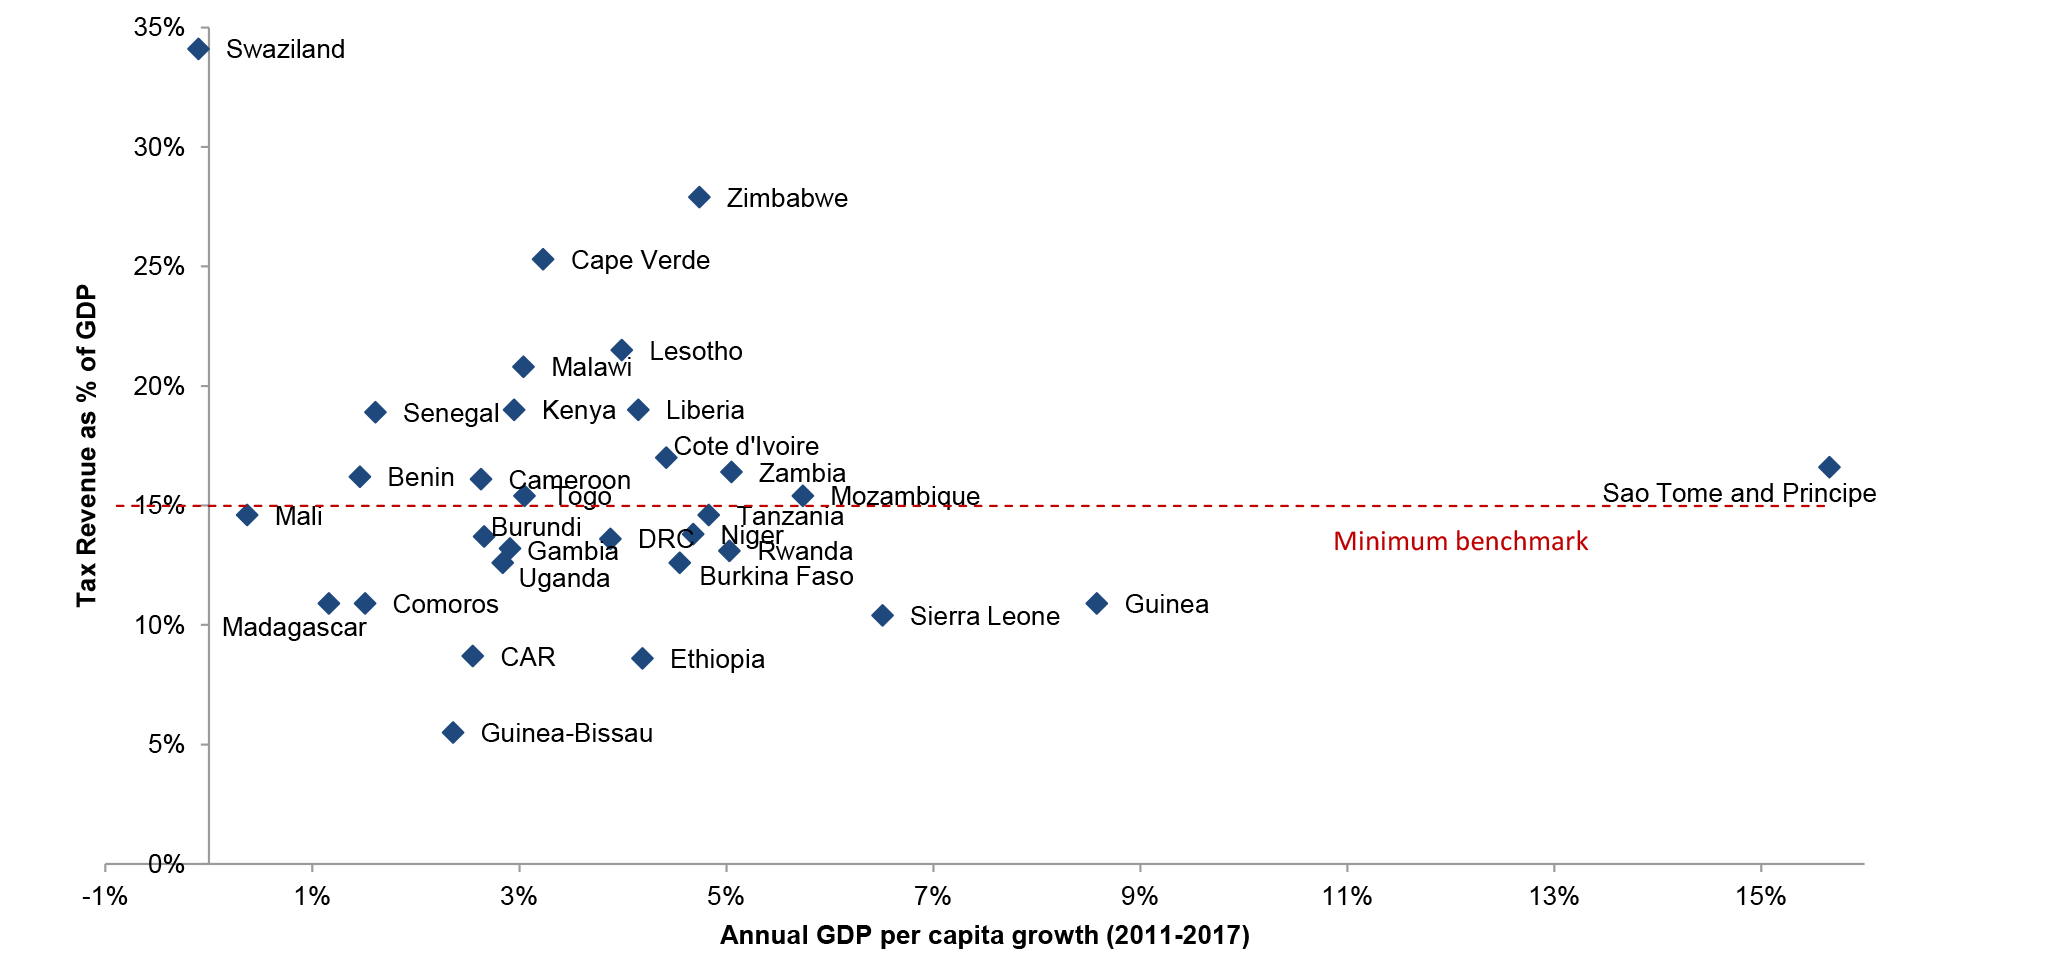 Growth and taxation rates in low- and lower middle-income countries.